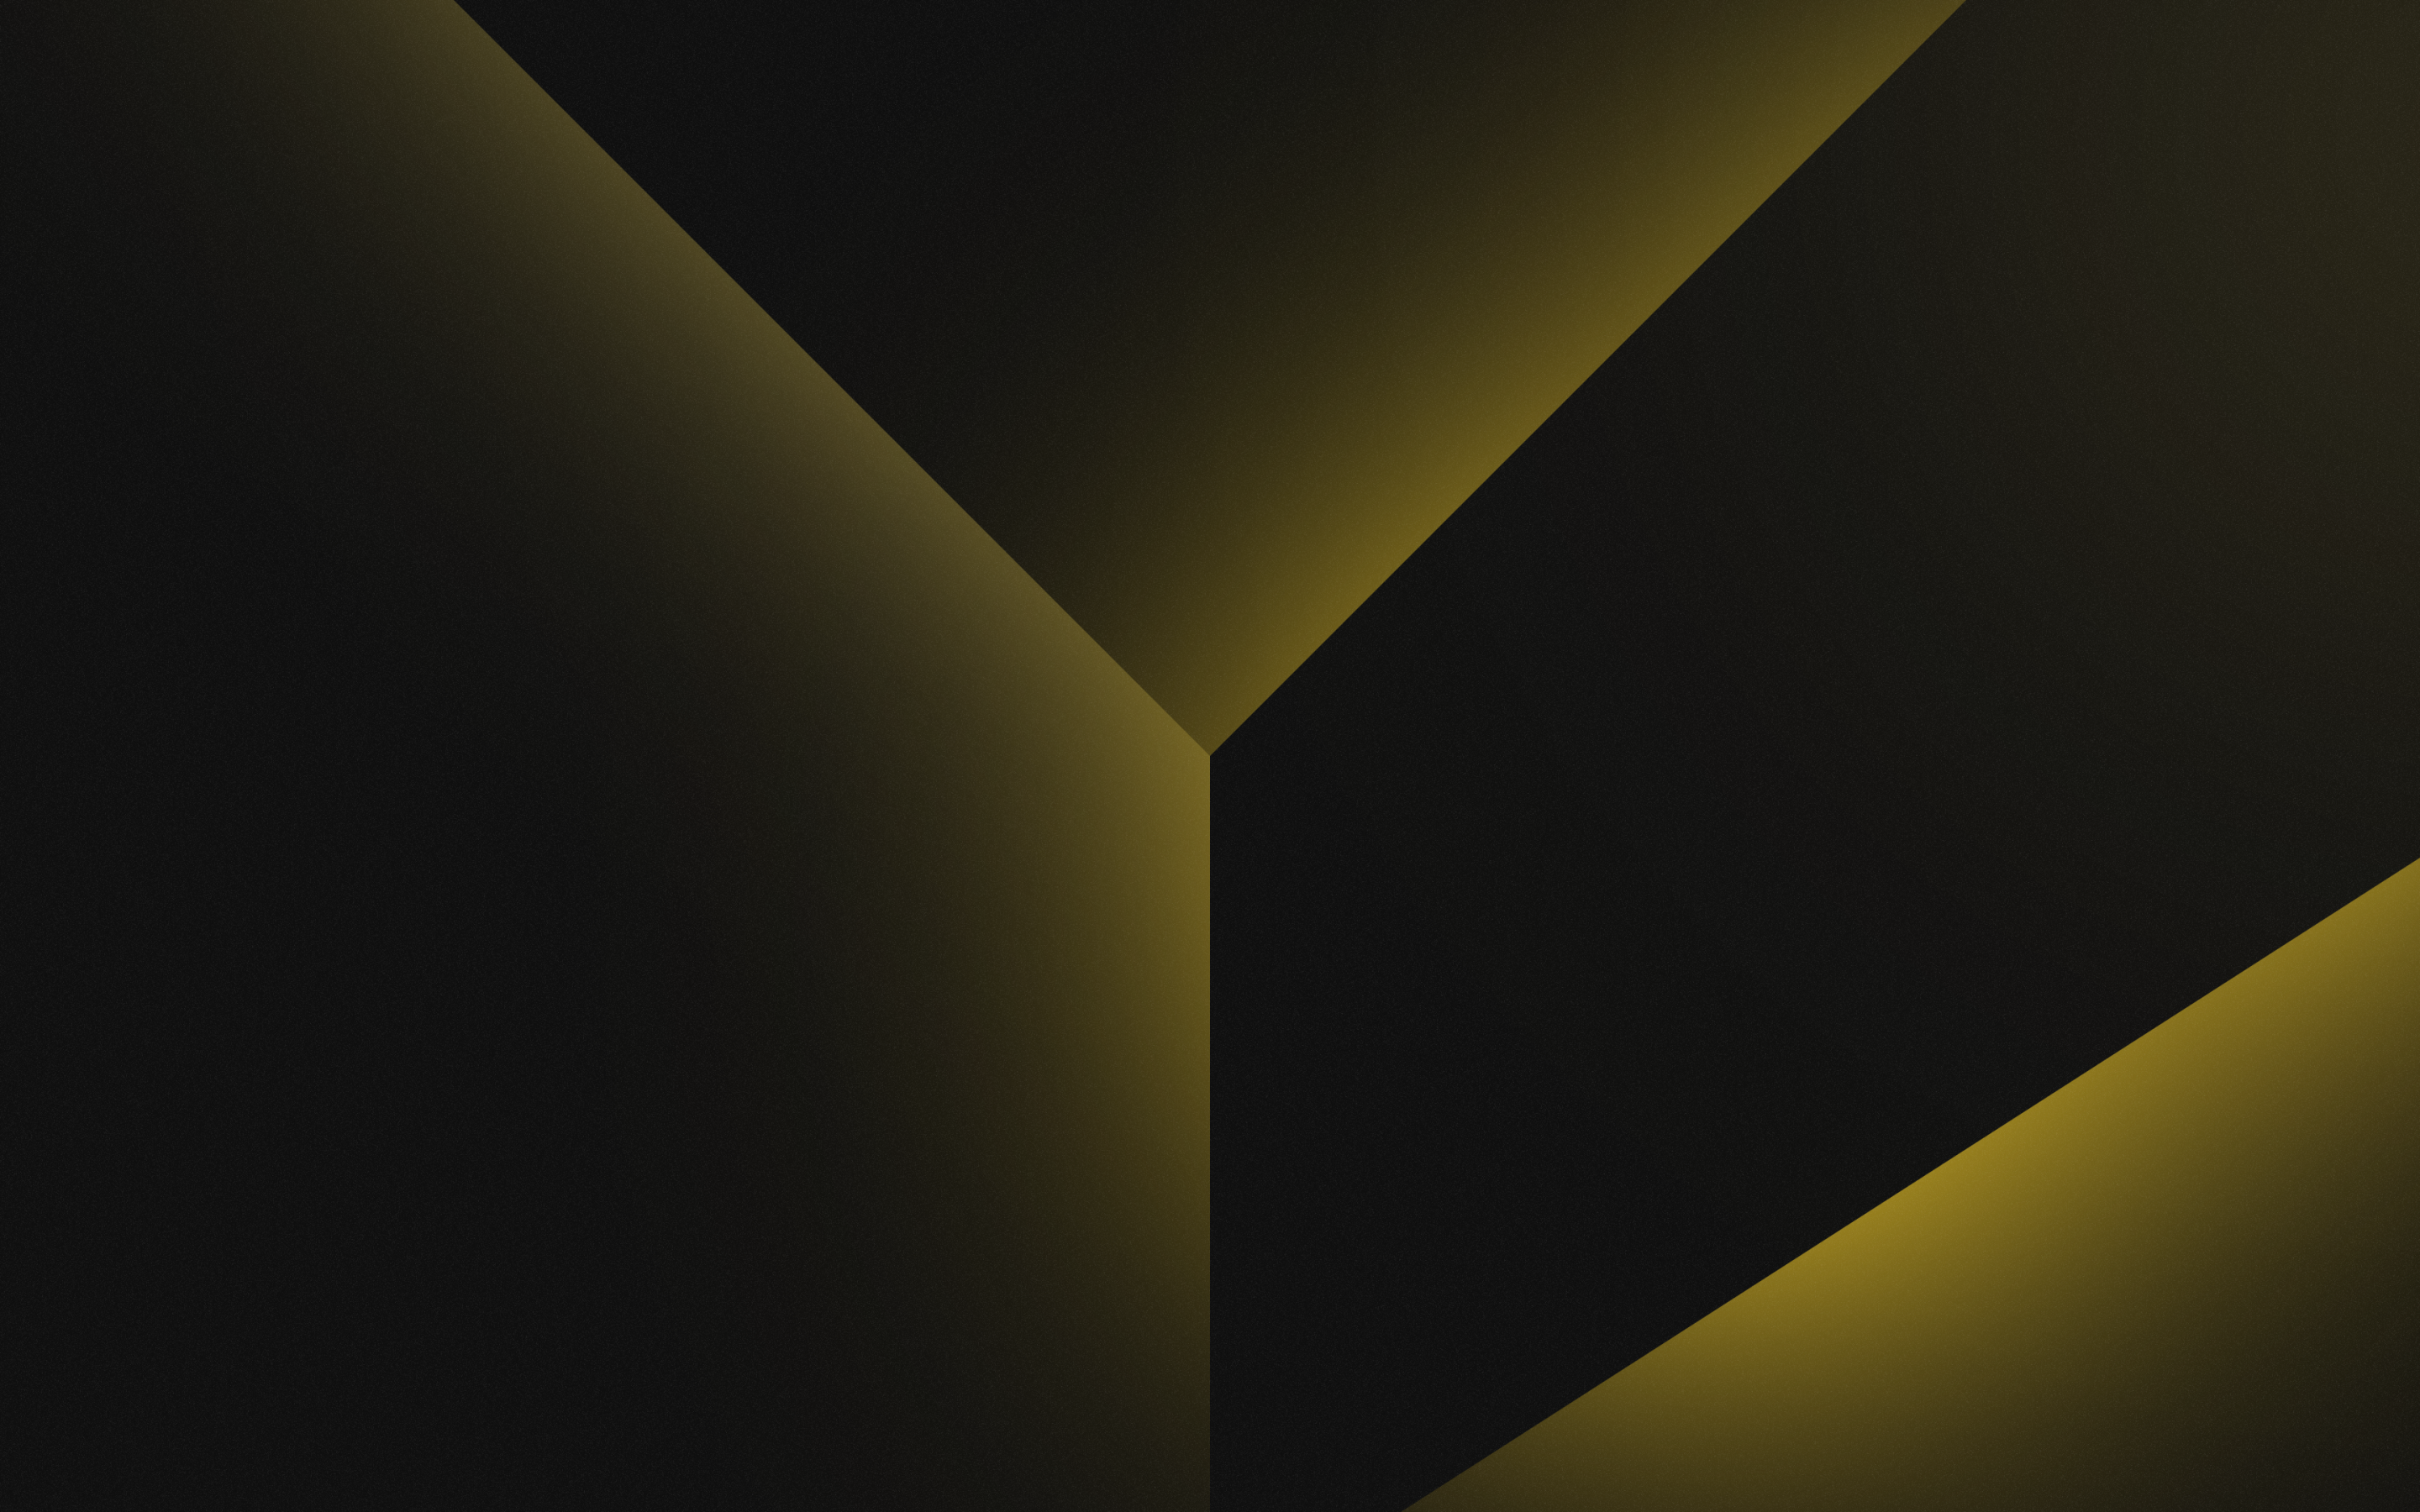 Black And Yellow Shade Background 2560x1440 Download Hd Wallpaper Wallpapertip